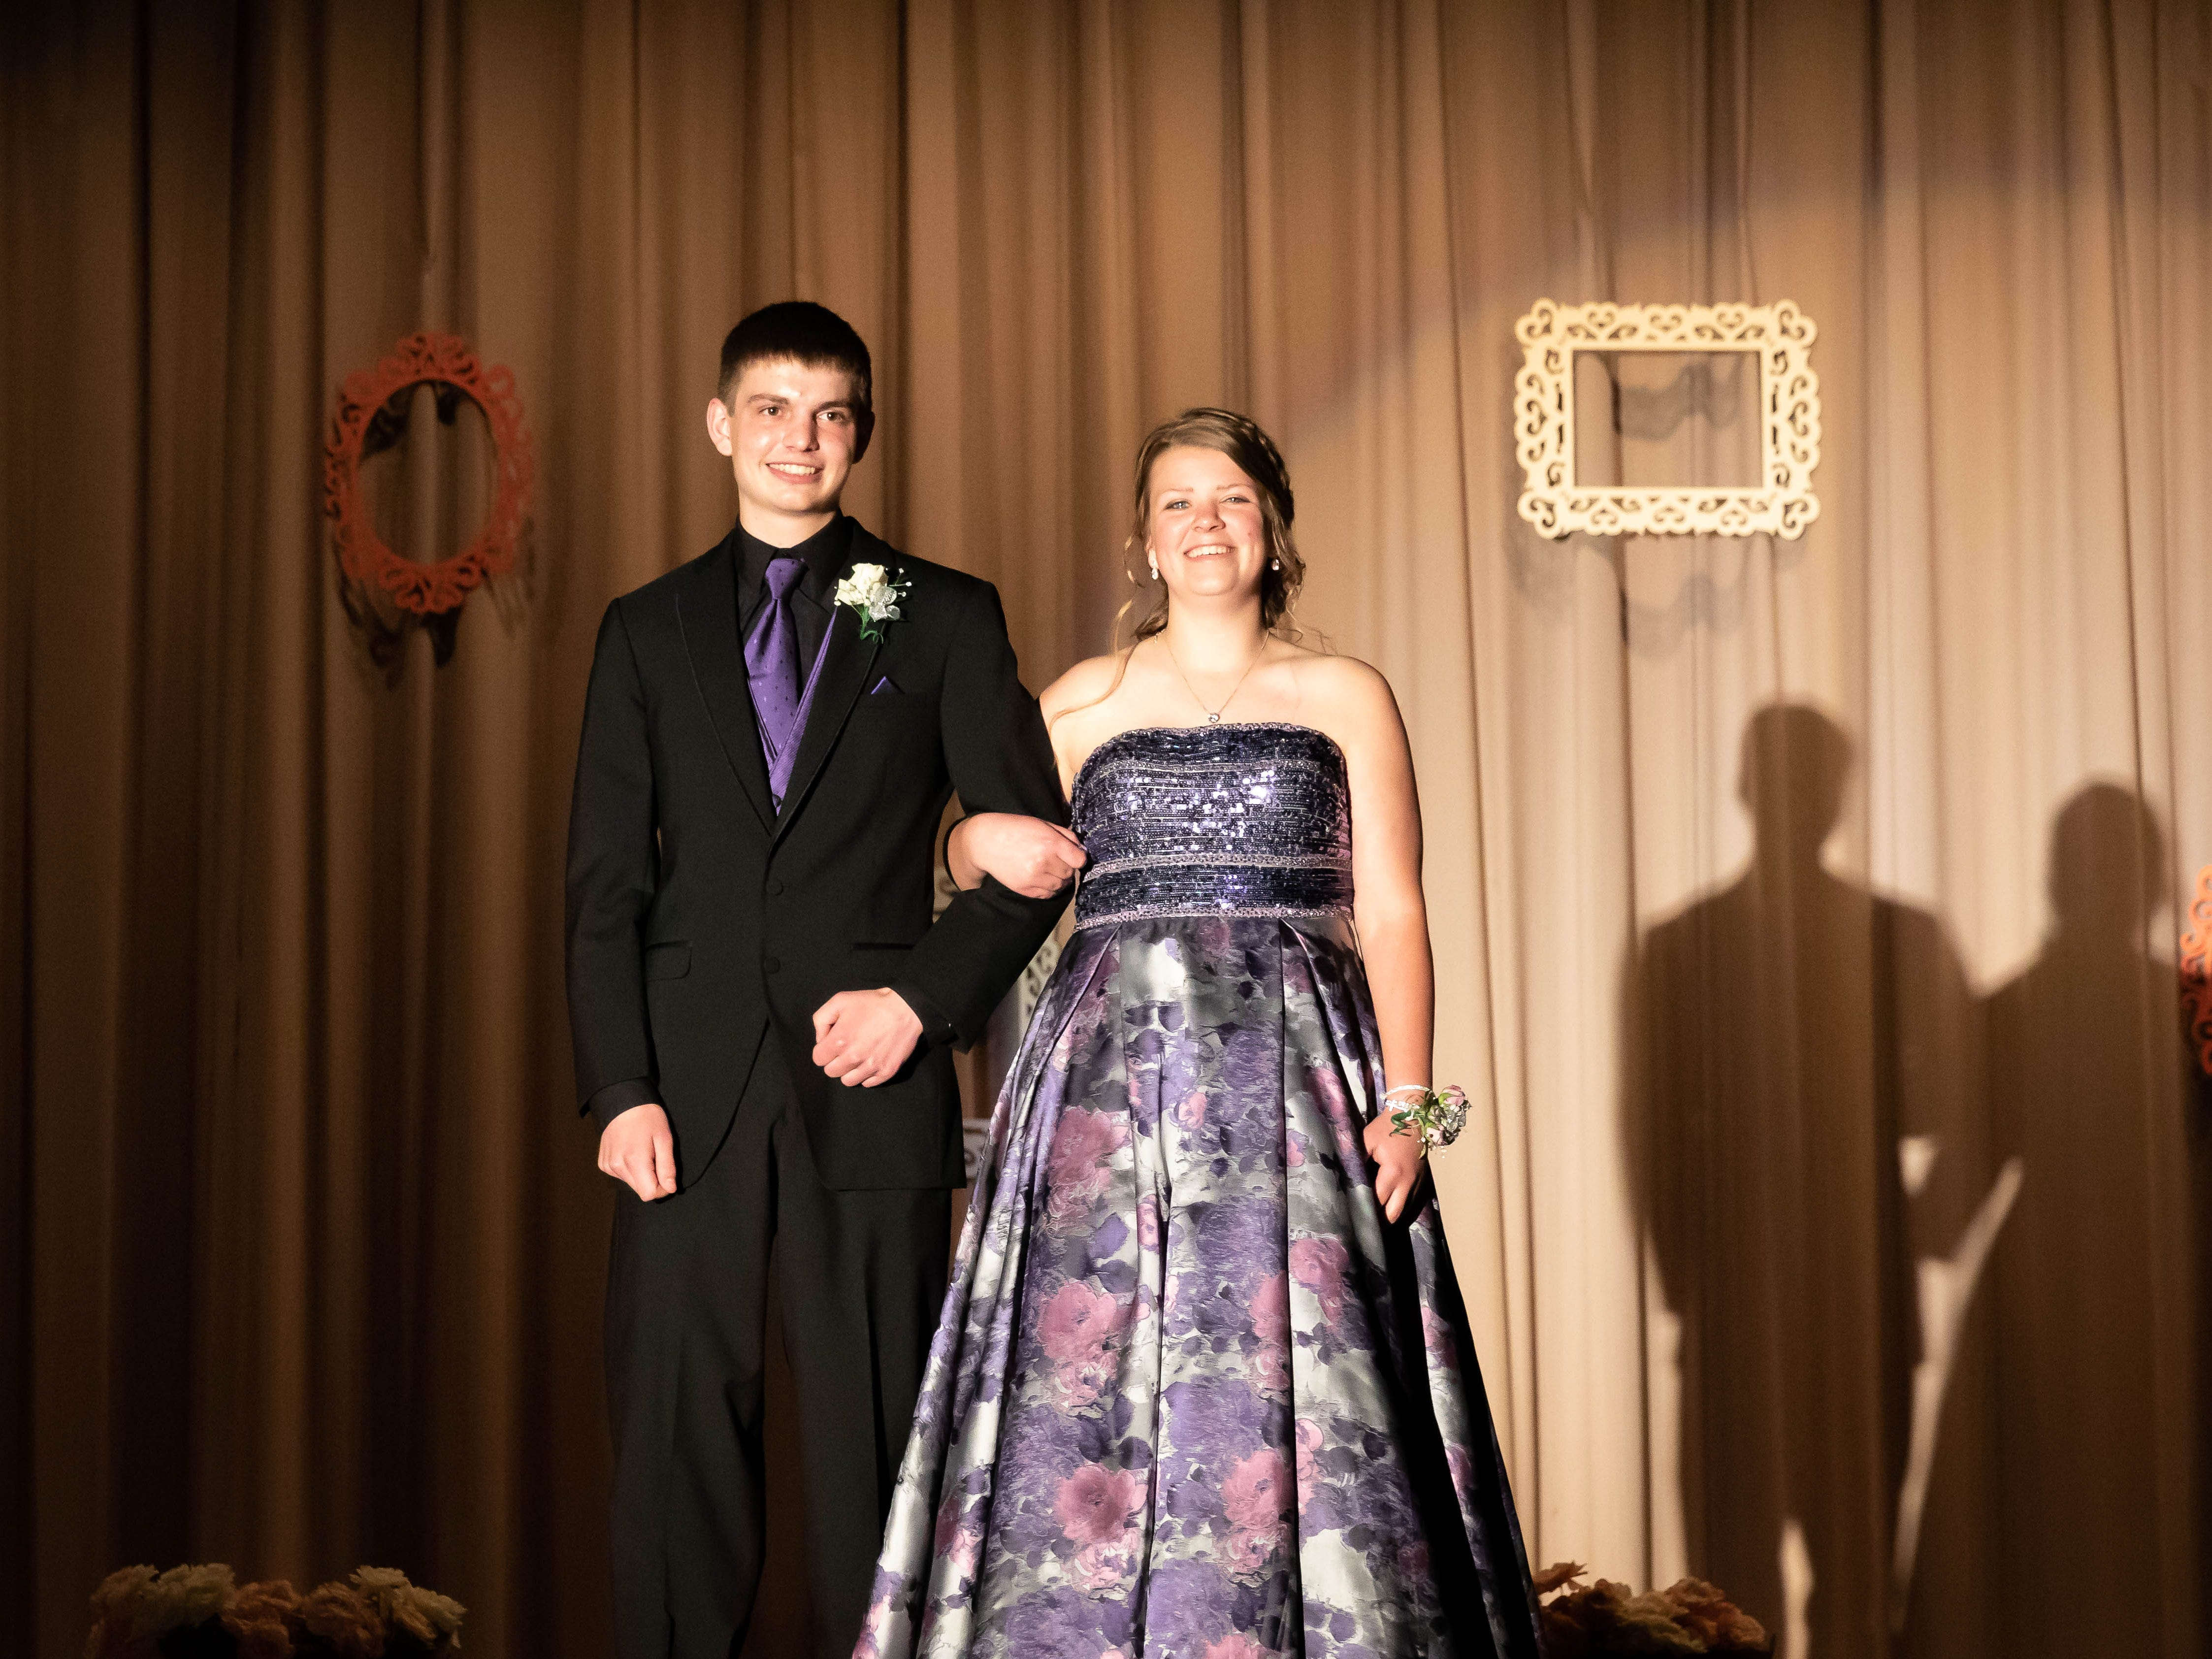 Students participate in the grand march during the Assumption High School prom on Saturday, April 27, 2019, at Assumption High School.